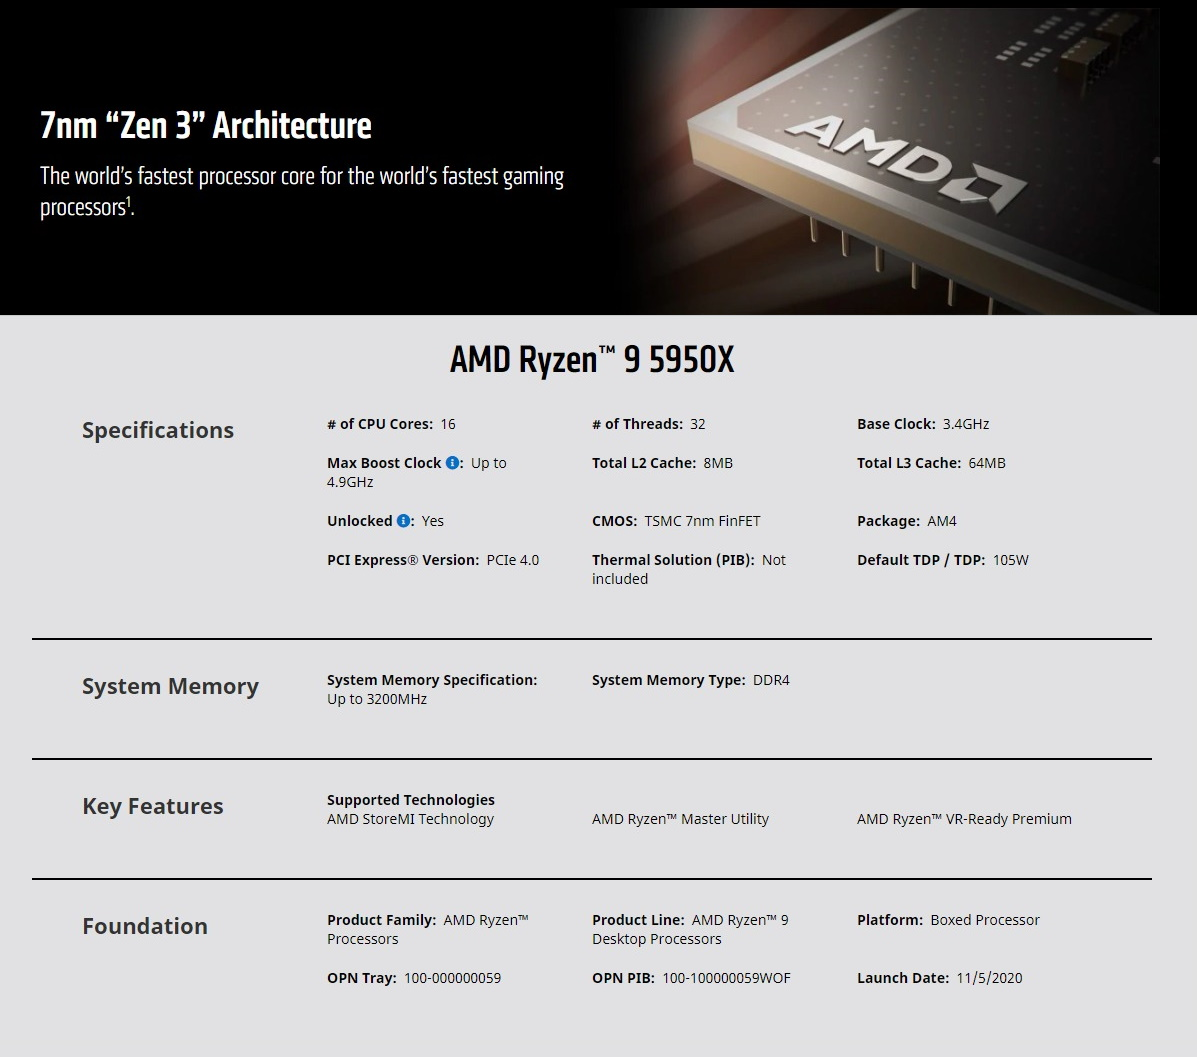 A large marketing image providing additional information about the product AMD Ryzen 9 5950X 3.4Ghz 16 Core 32 Thread AM4 - No HSF Retail Box - Additional alt info not provided